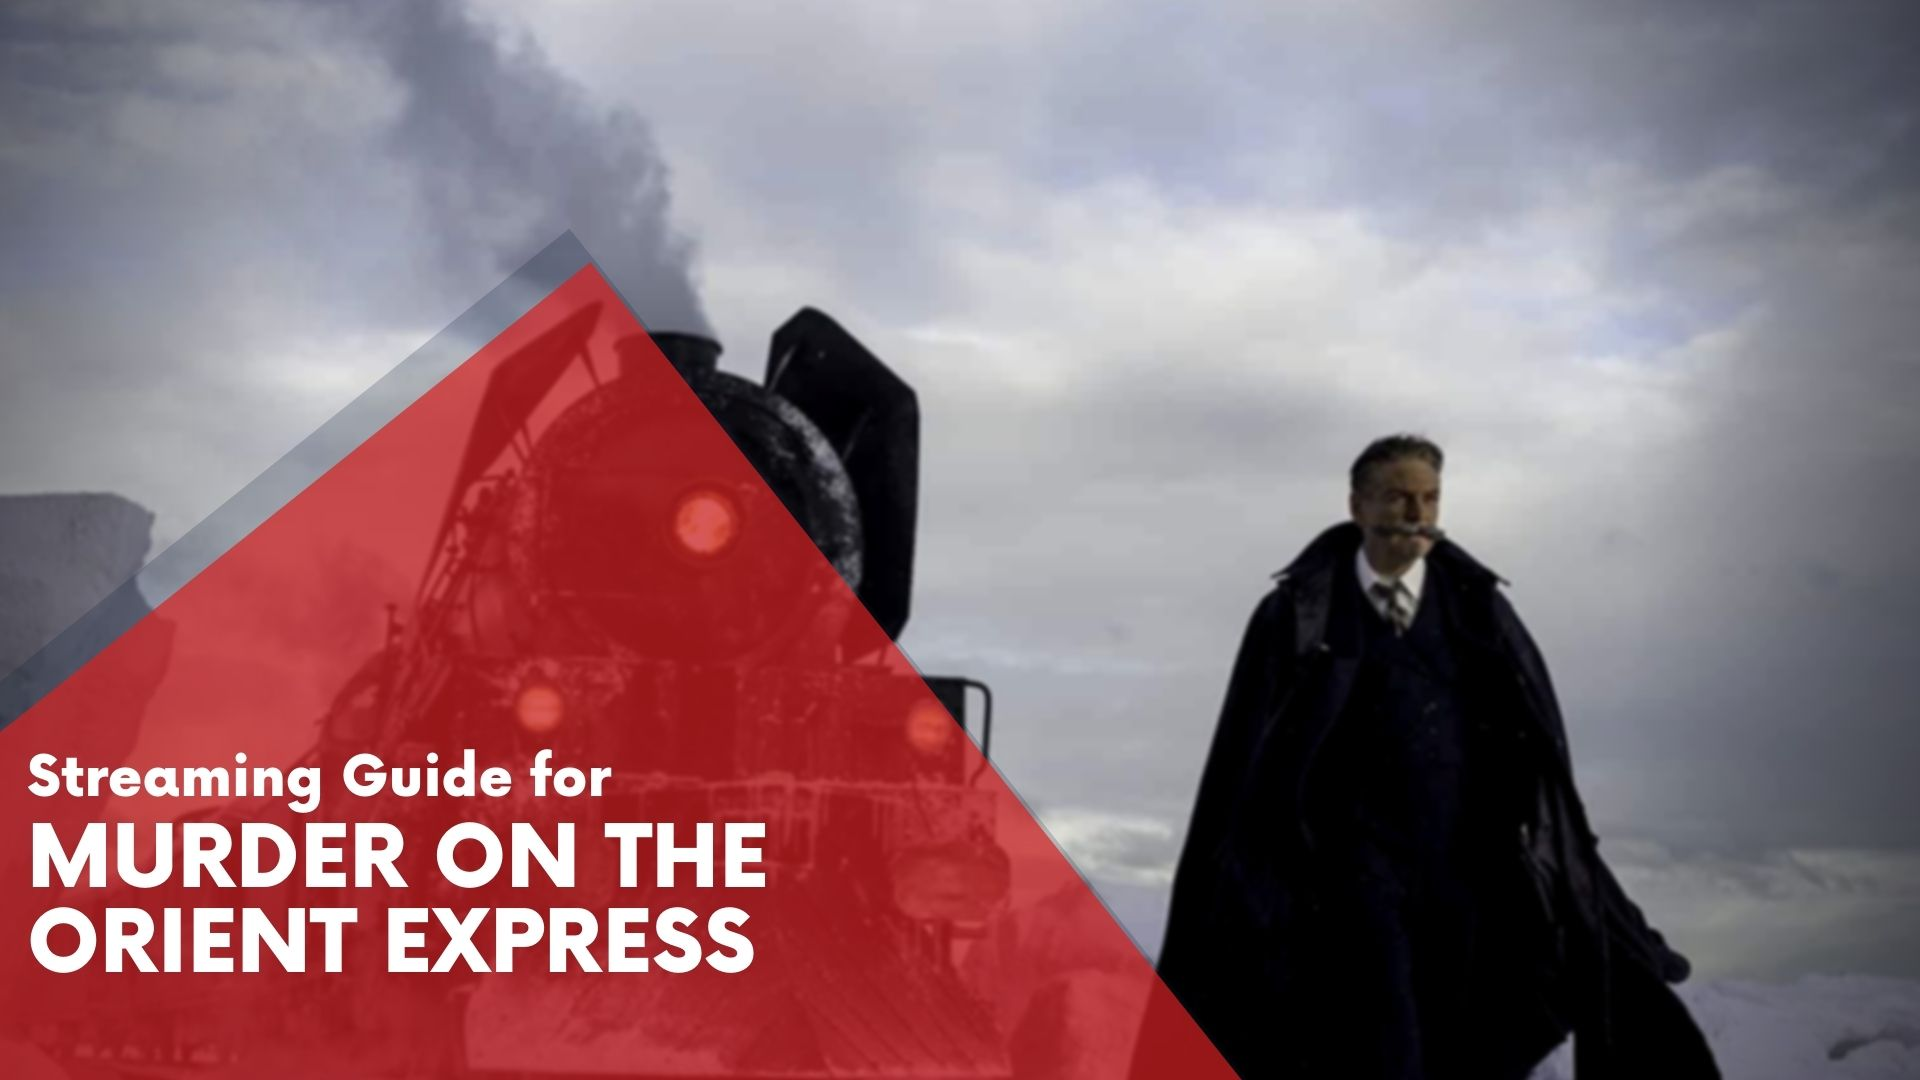 Answering if Murder on the Orient Express is available on Hulu